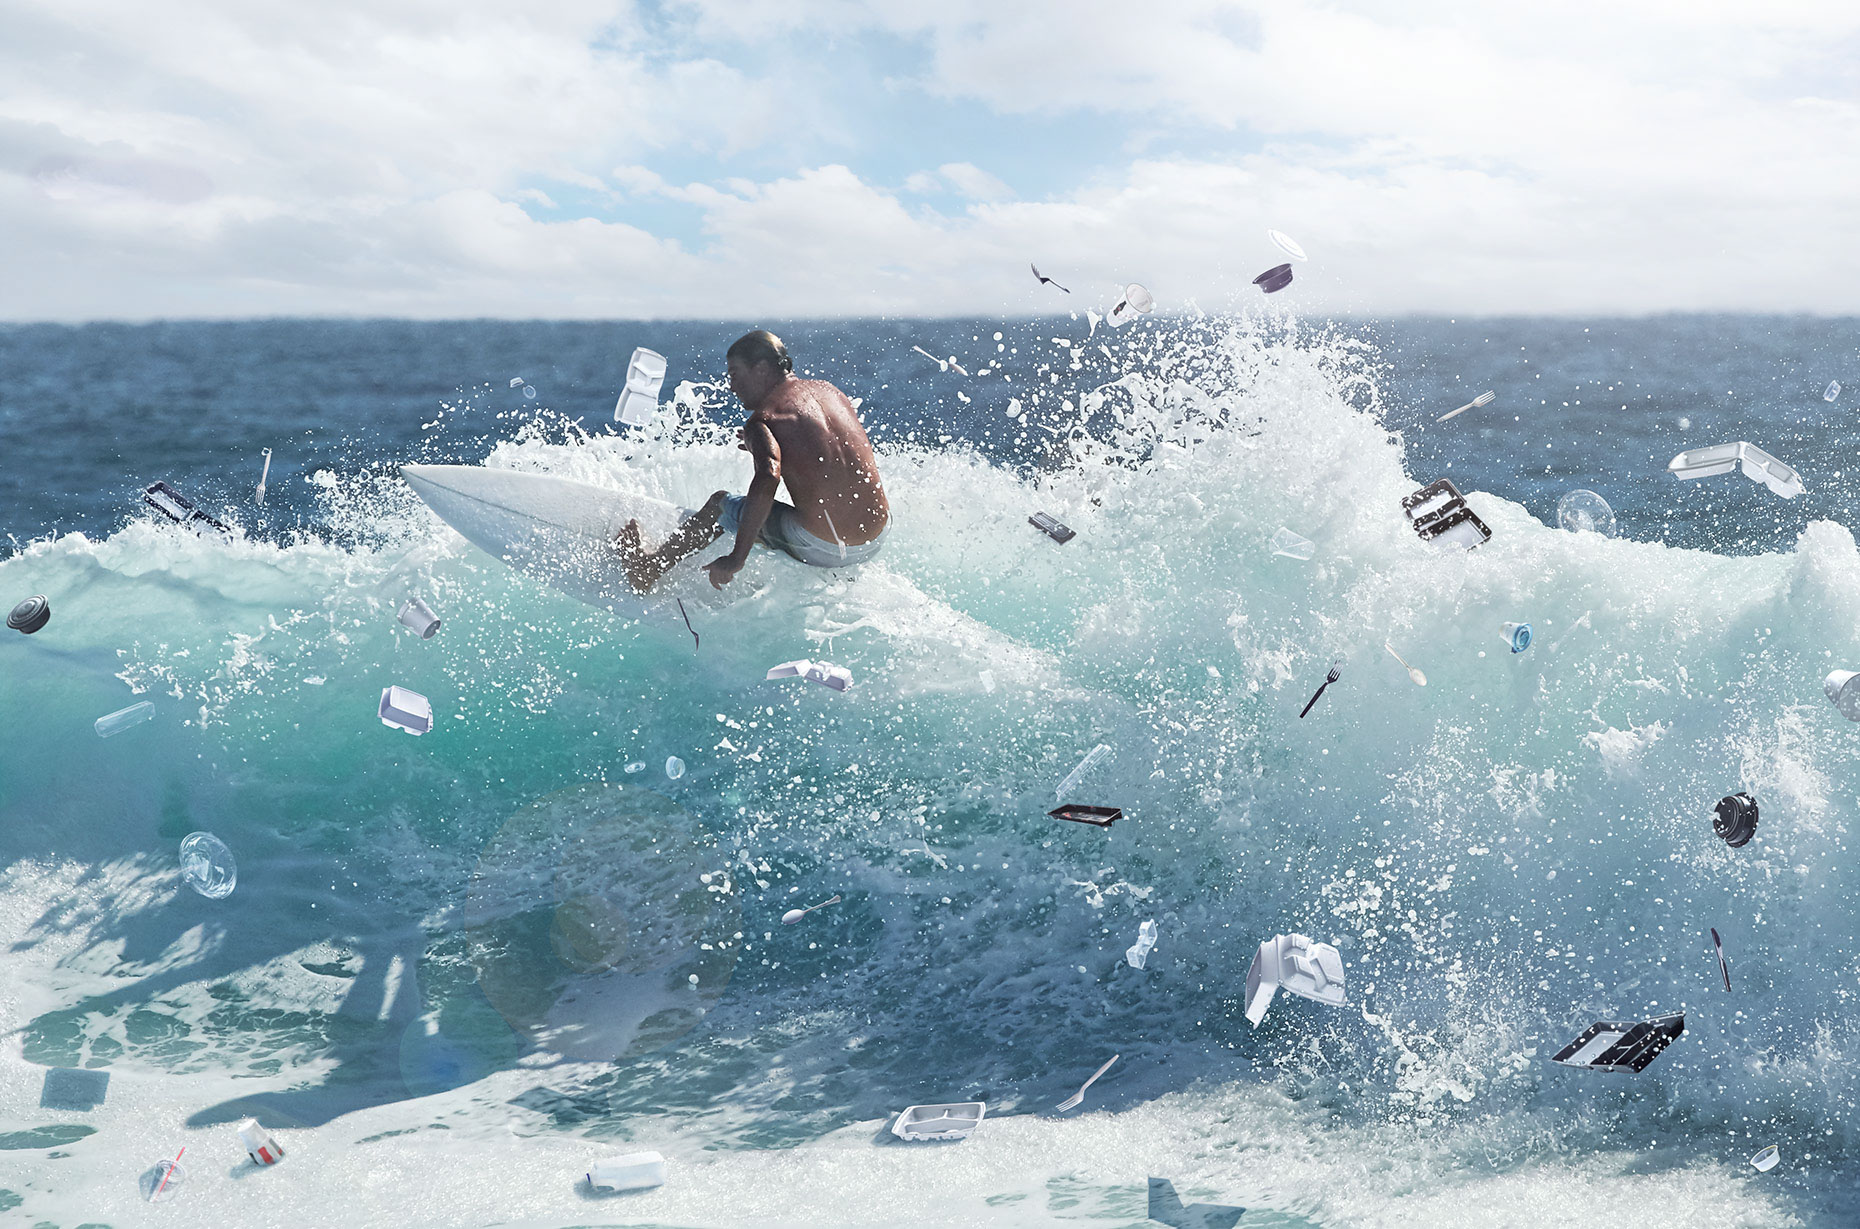 Art Direction & Digital Photography: Plastic Surf by Weston Fuller